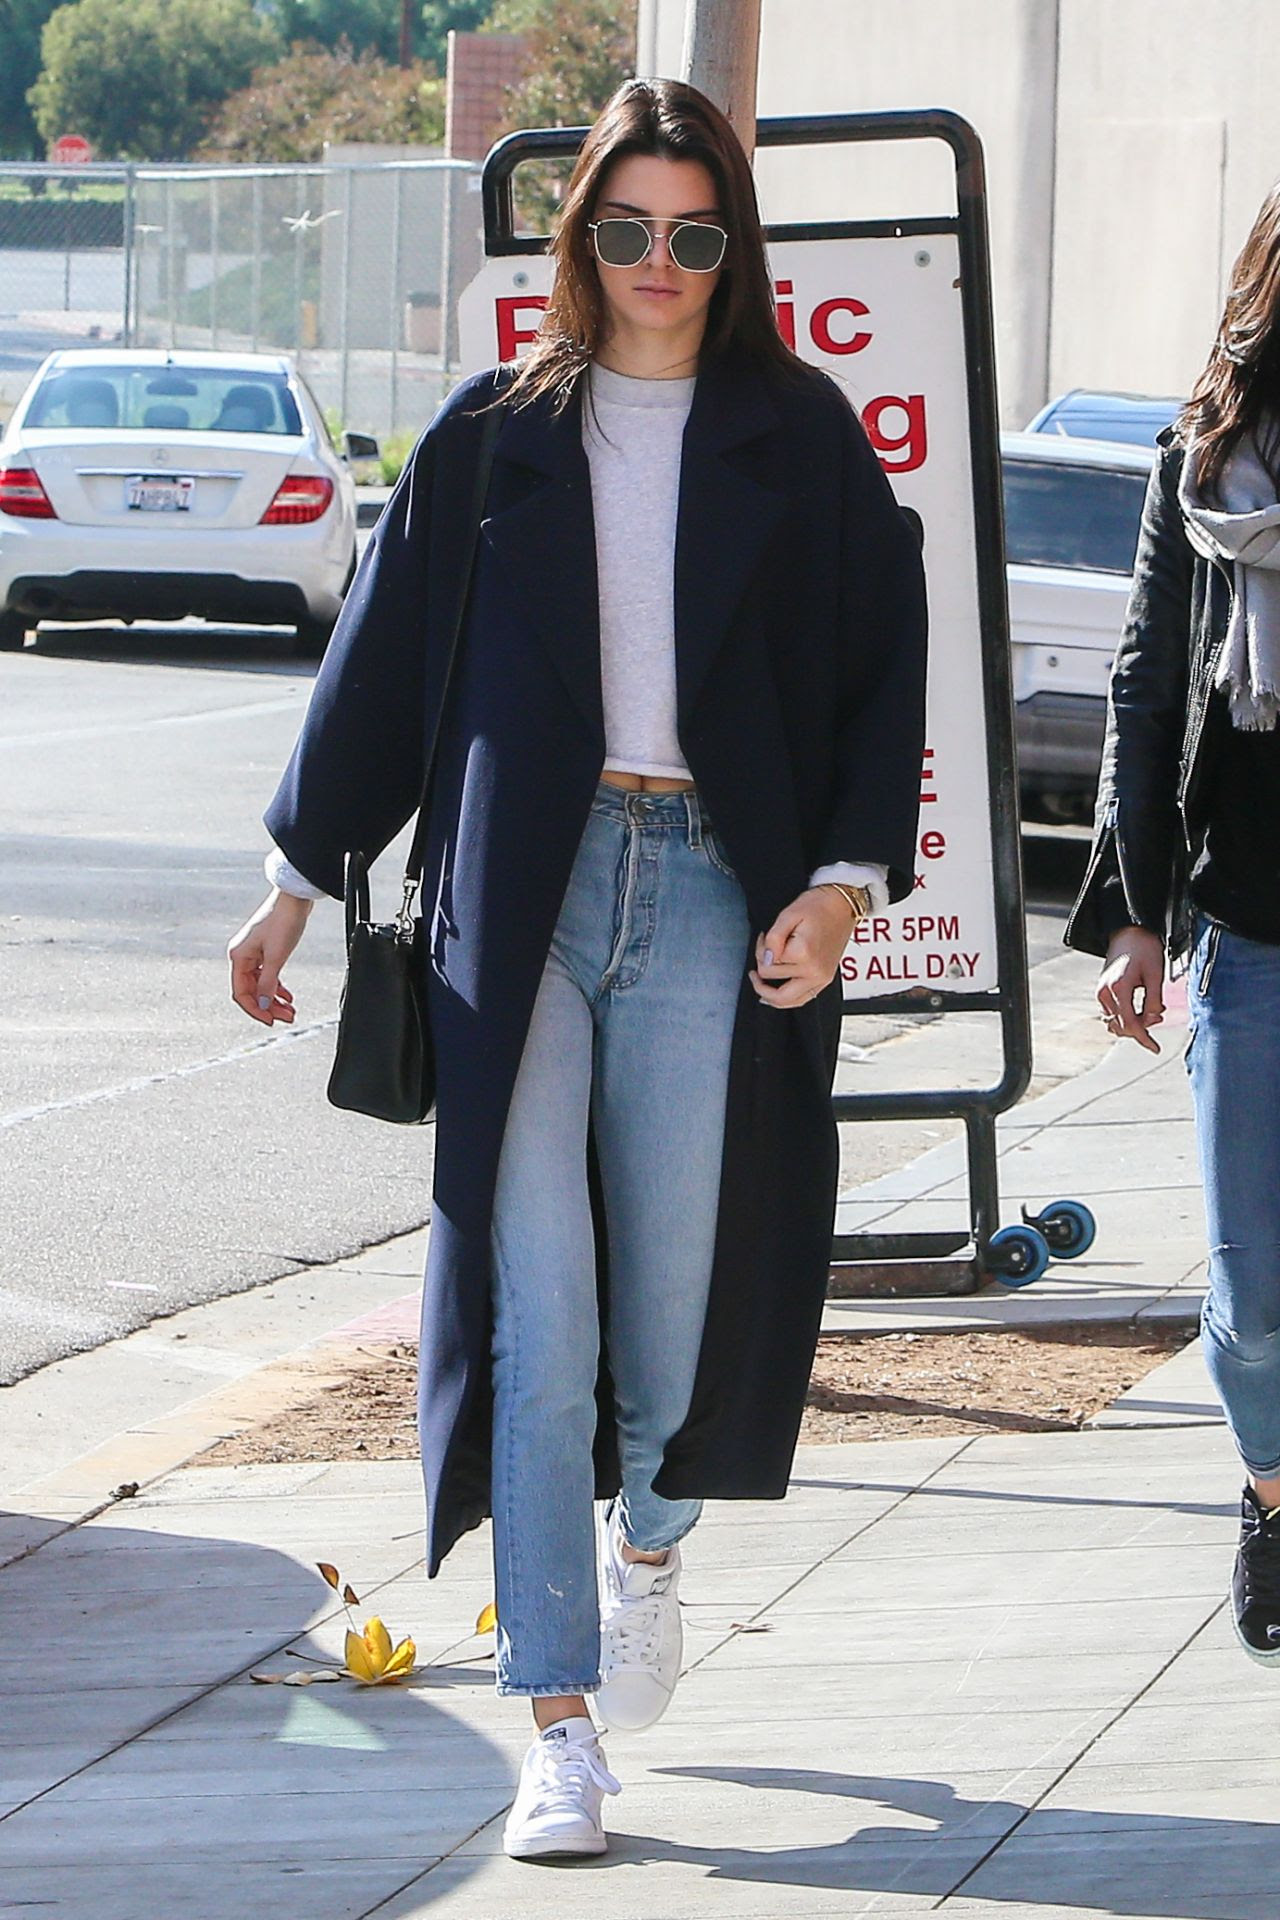 kendall jenner street style  out in la 12192015